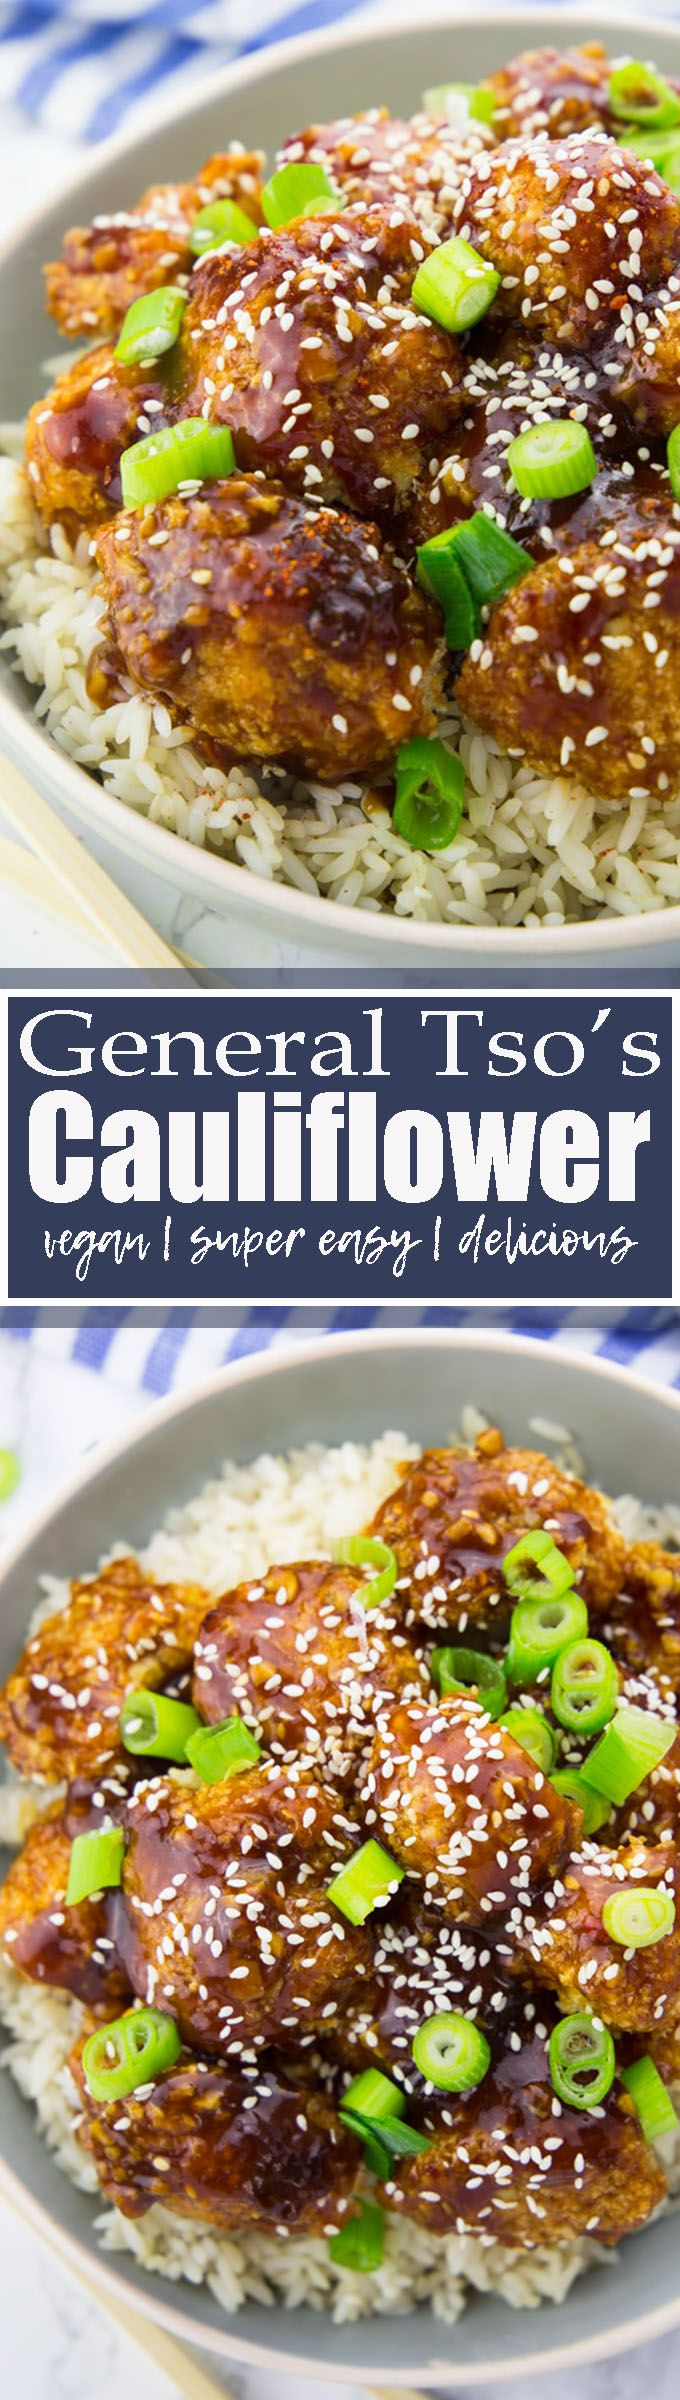 This vegan general tso's cauliflower is so crispy, delicious, and spicy-sweet! And it's just as good as the fried version, while being so much healthier! Welcome to cauliflower heaven! Find more vegetarian recipes at veganheaven.org <3